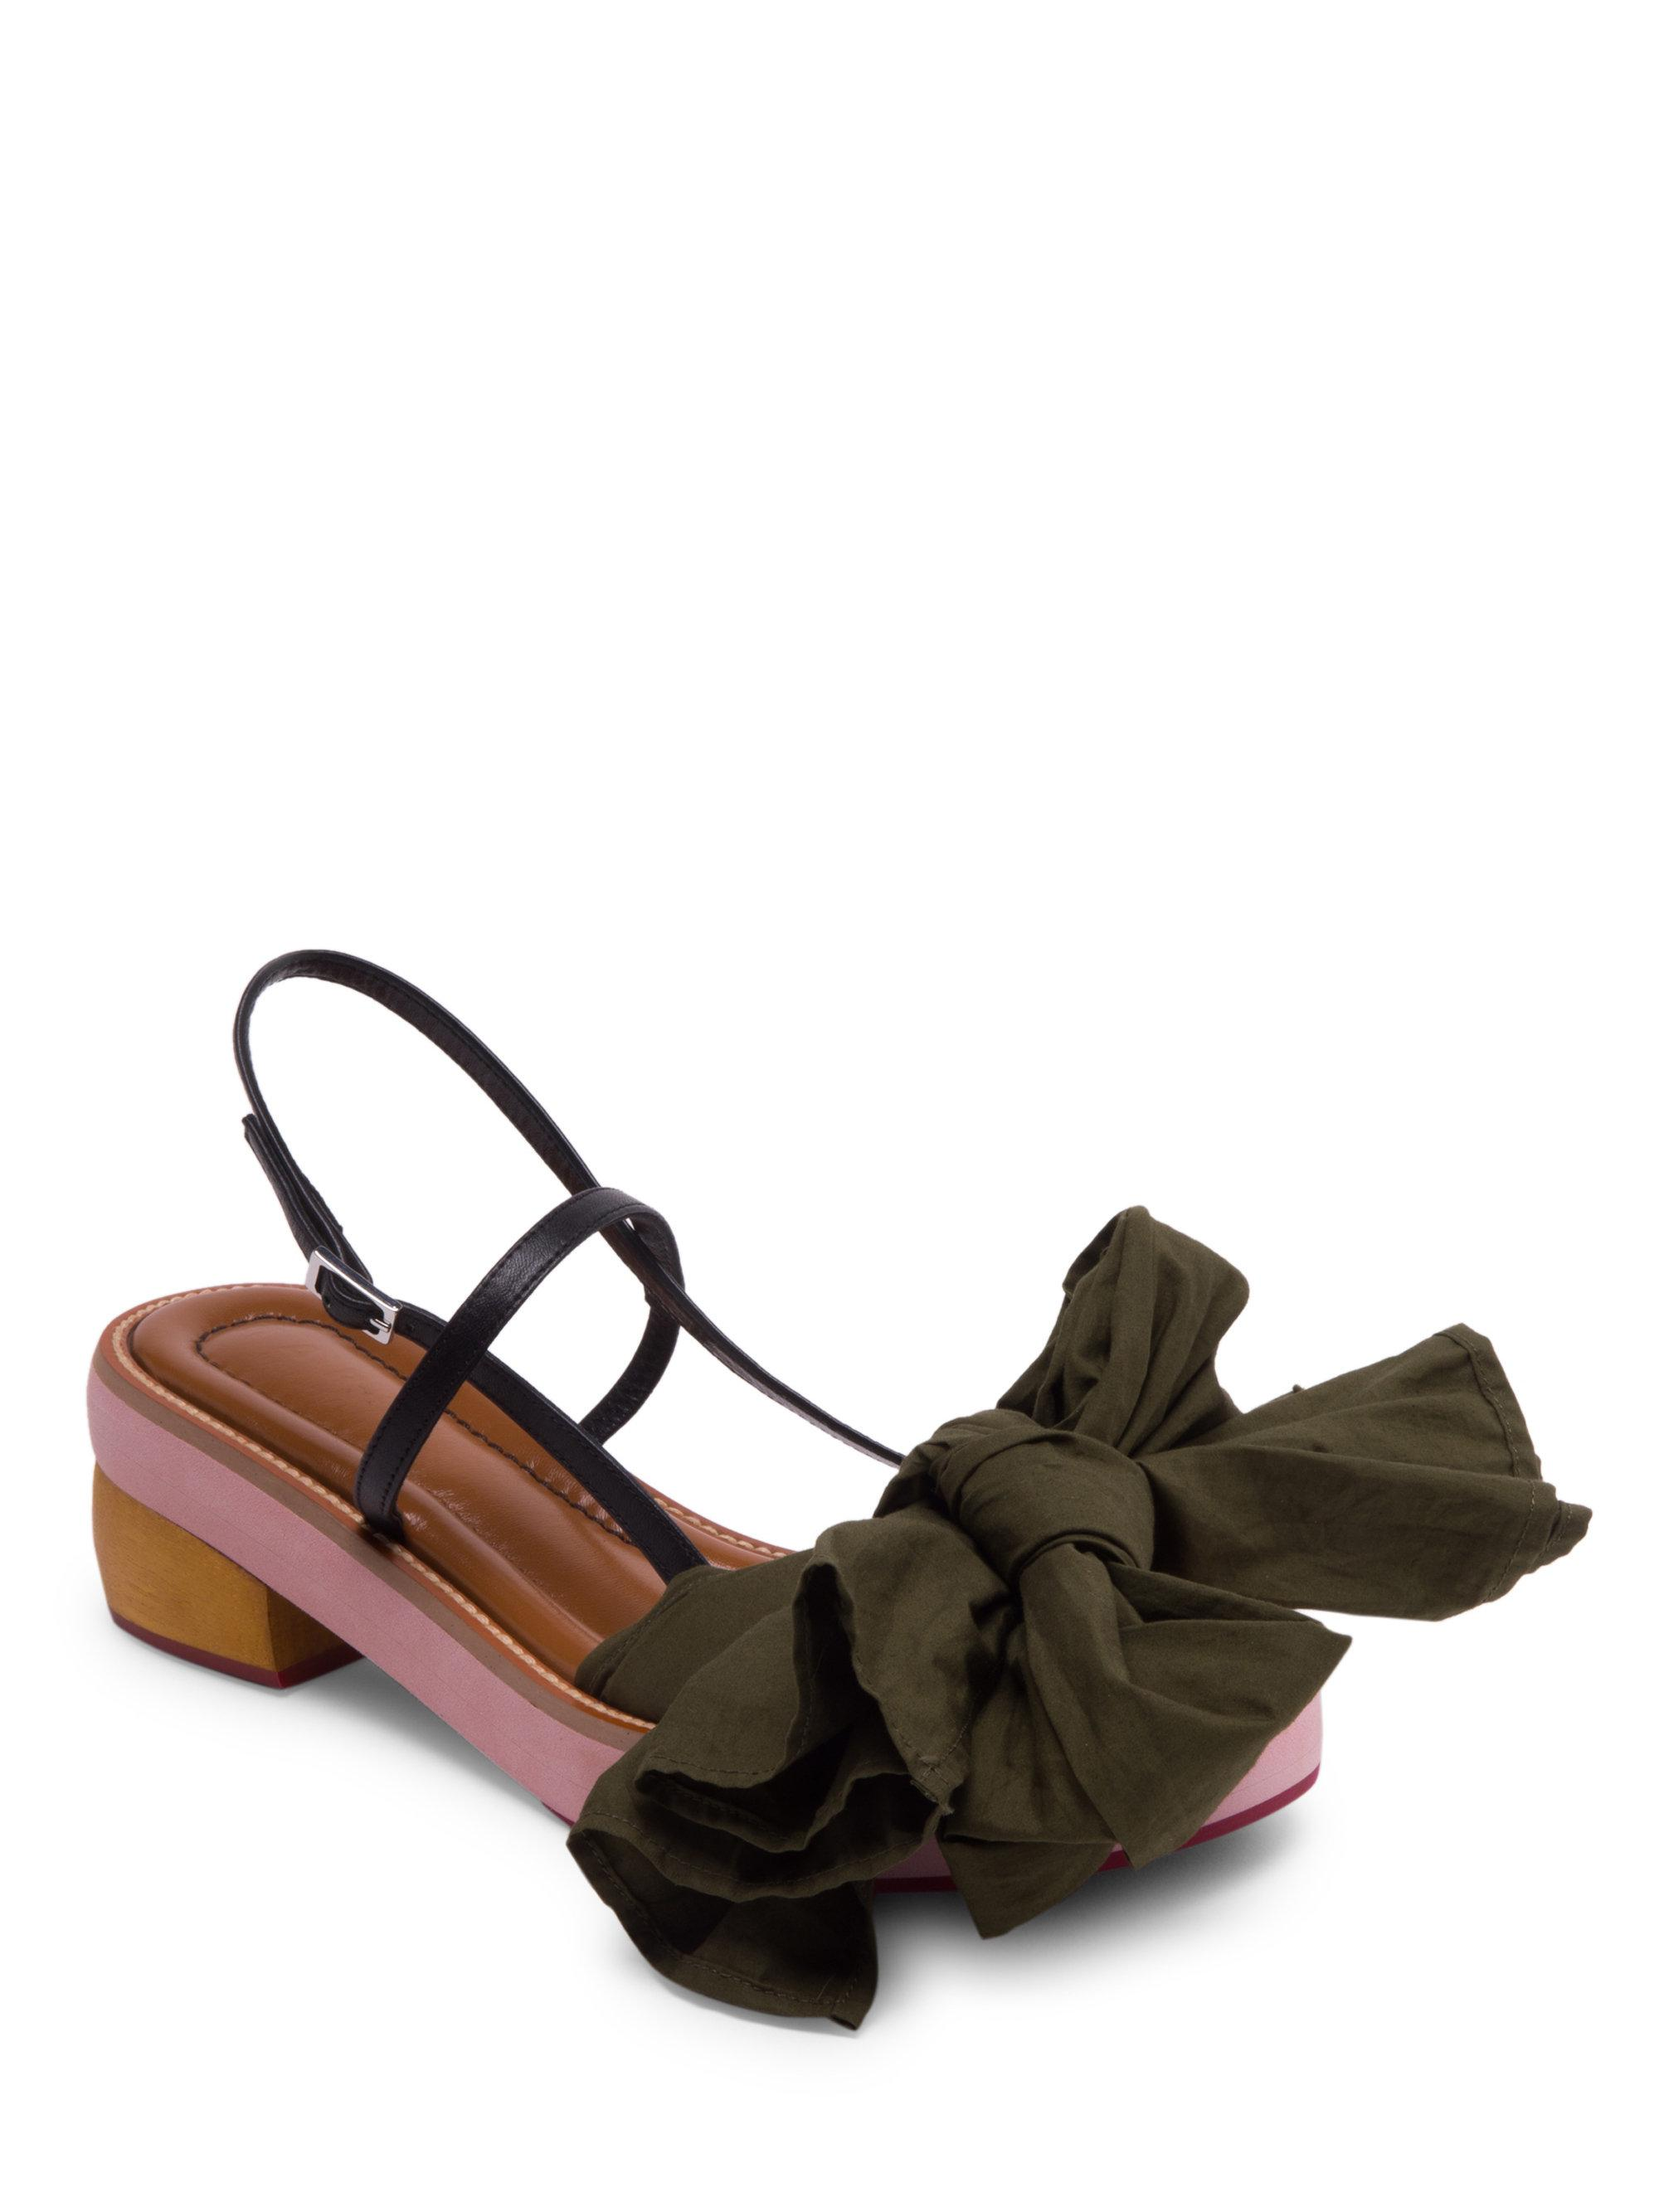 find great sale online Marni Leather Bow-Accented Sandals free shipping footlocker finishline bMJoSRxMs